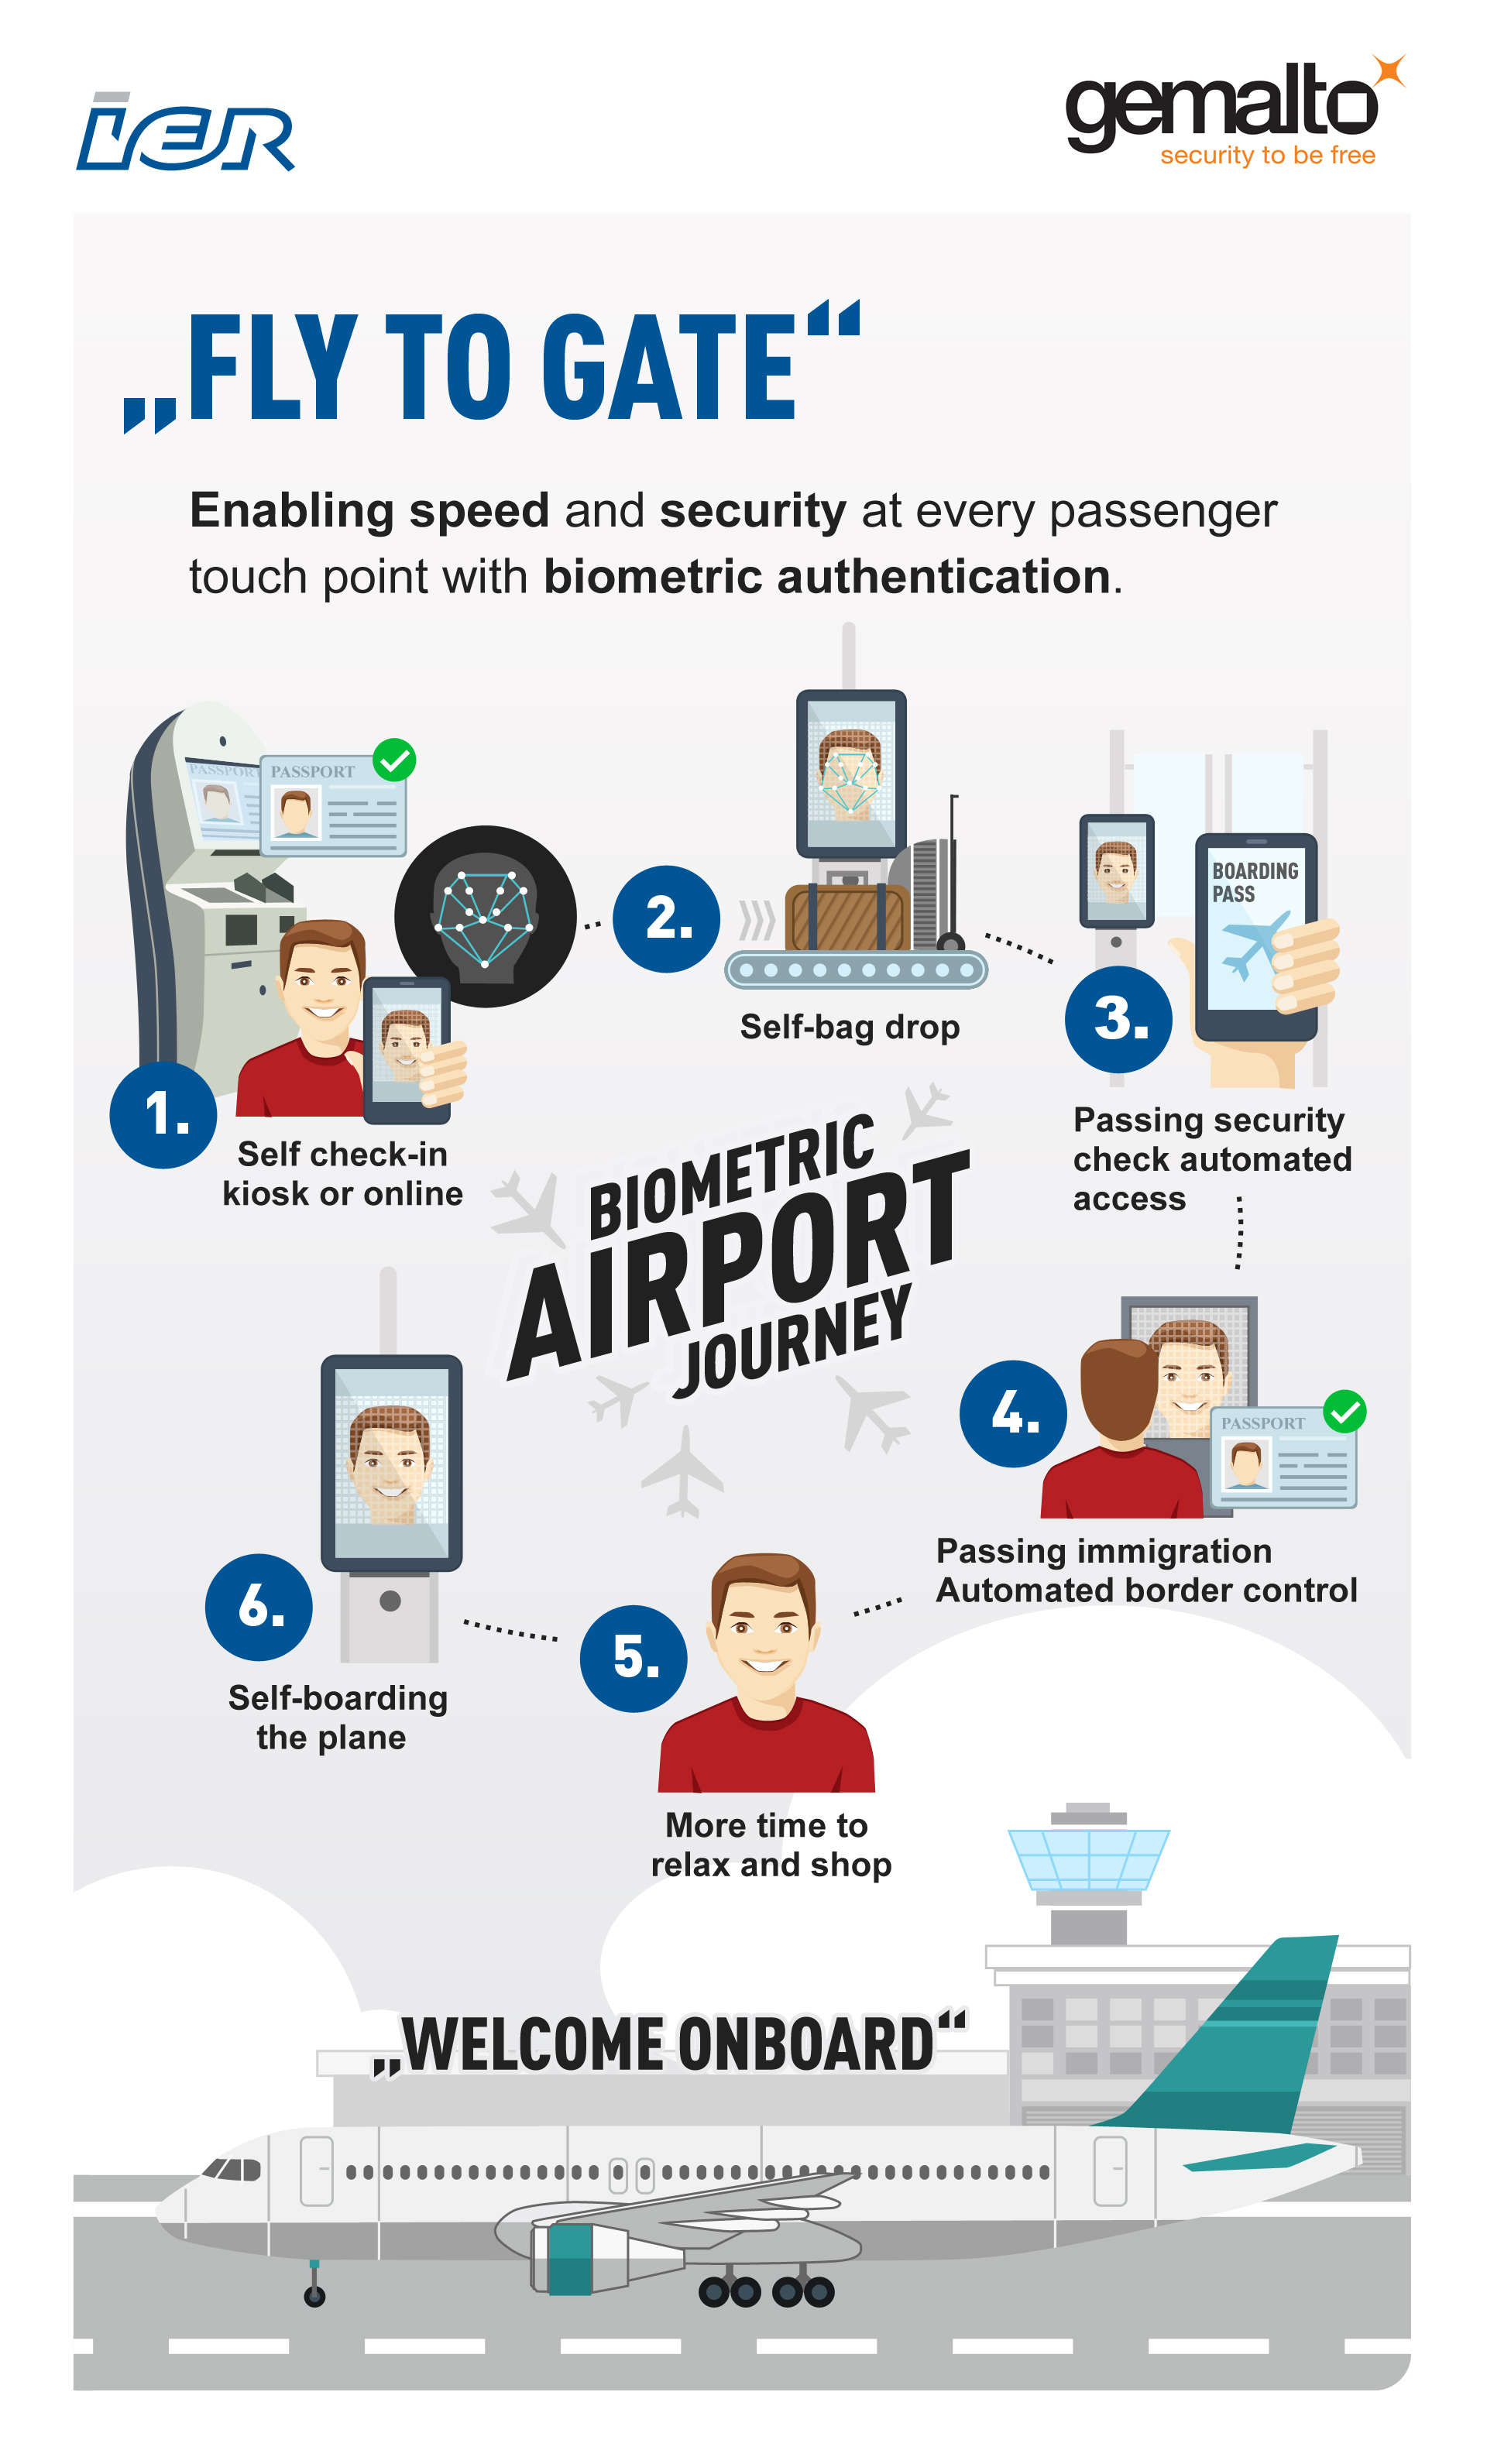 Gemalto And Ier Partner On Complete Self Service Airport Experience